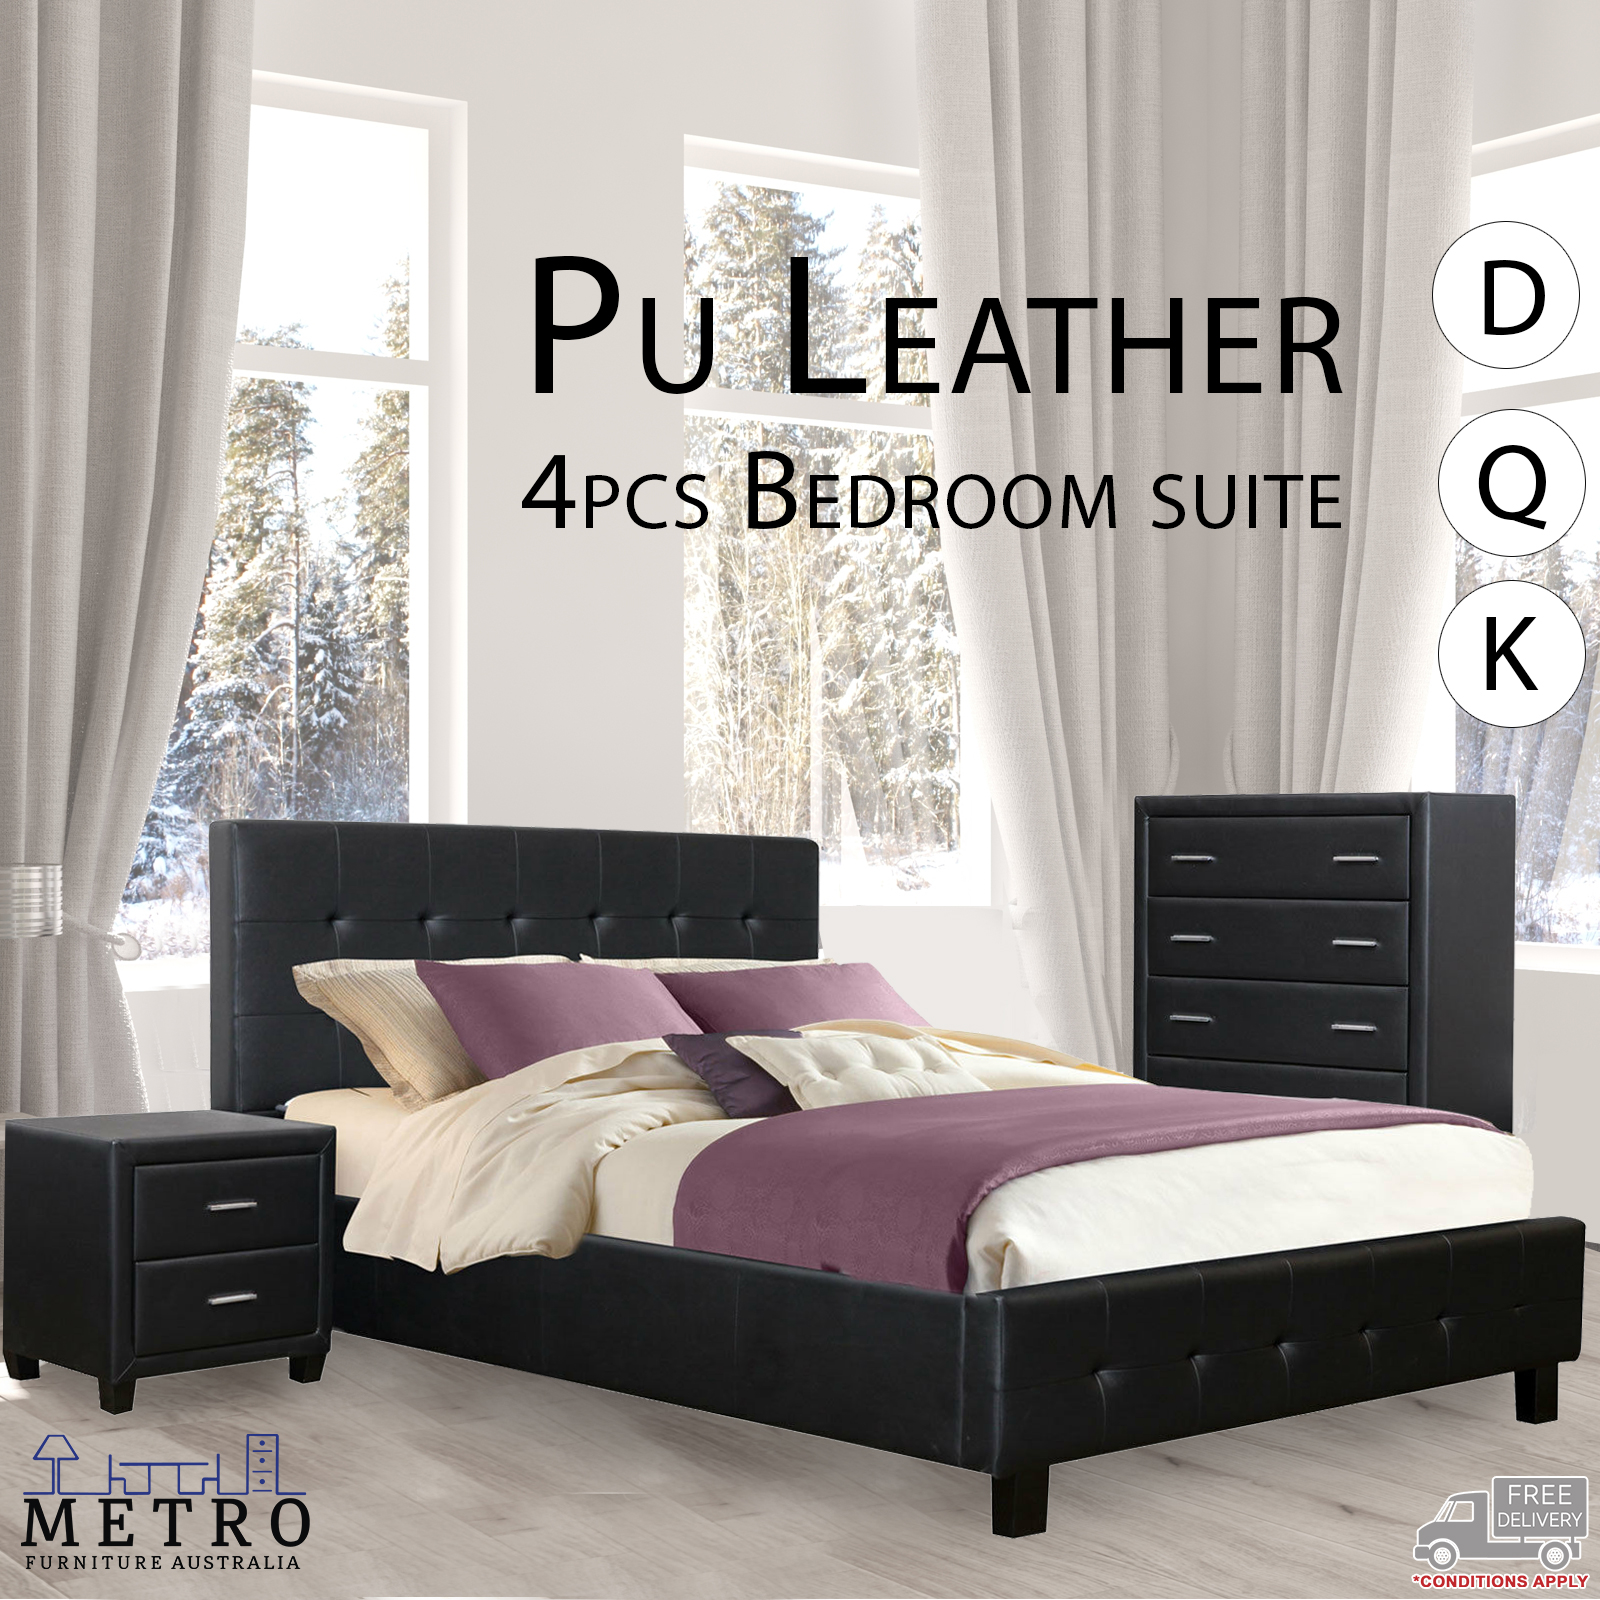 new luxury best quality pu leather 4pcs bedroom suite double queen king size ebay. Black Bedroom Furniture Sets. Home Design Ideas